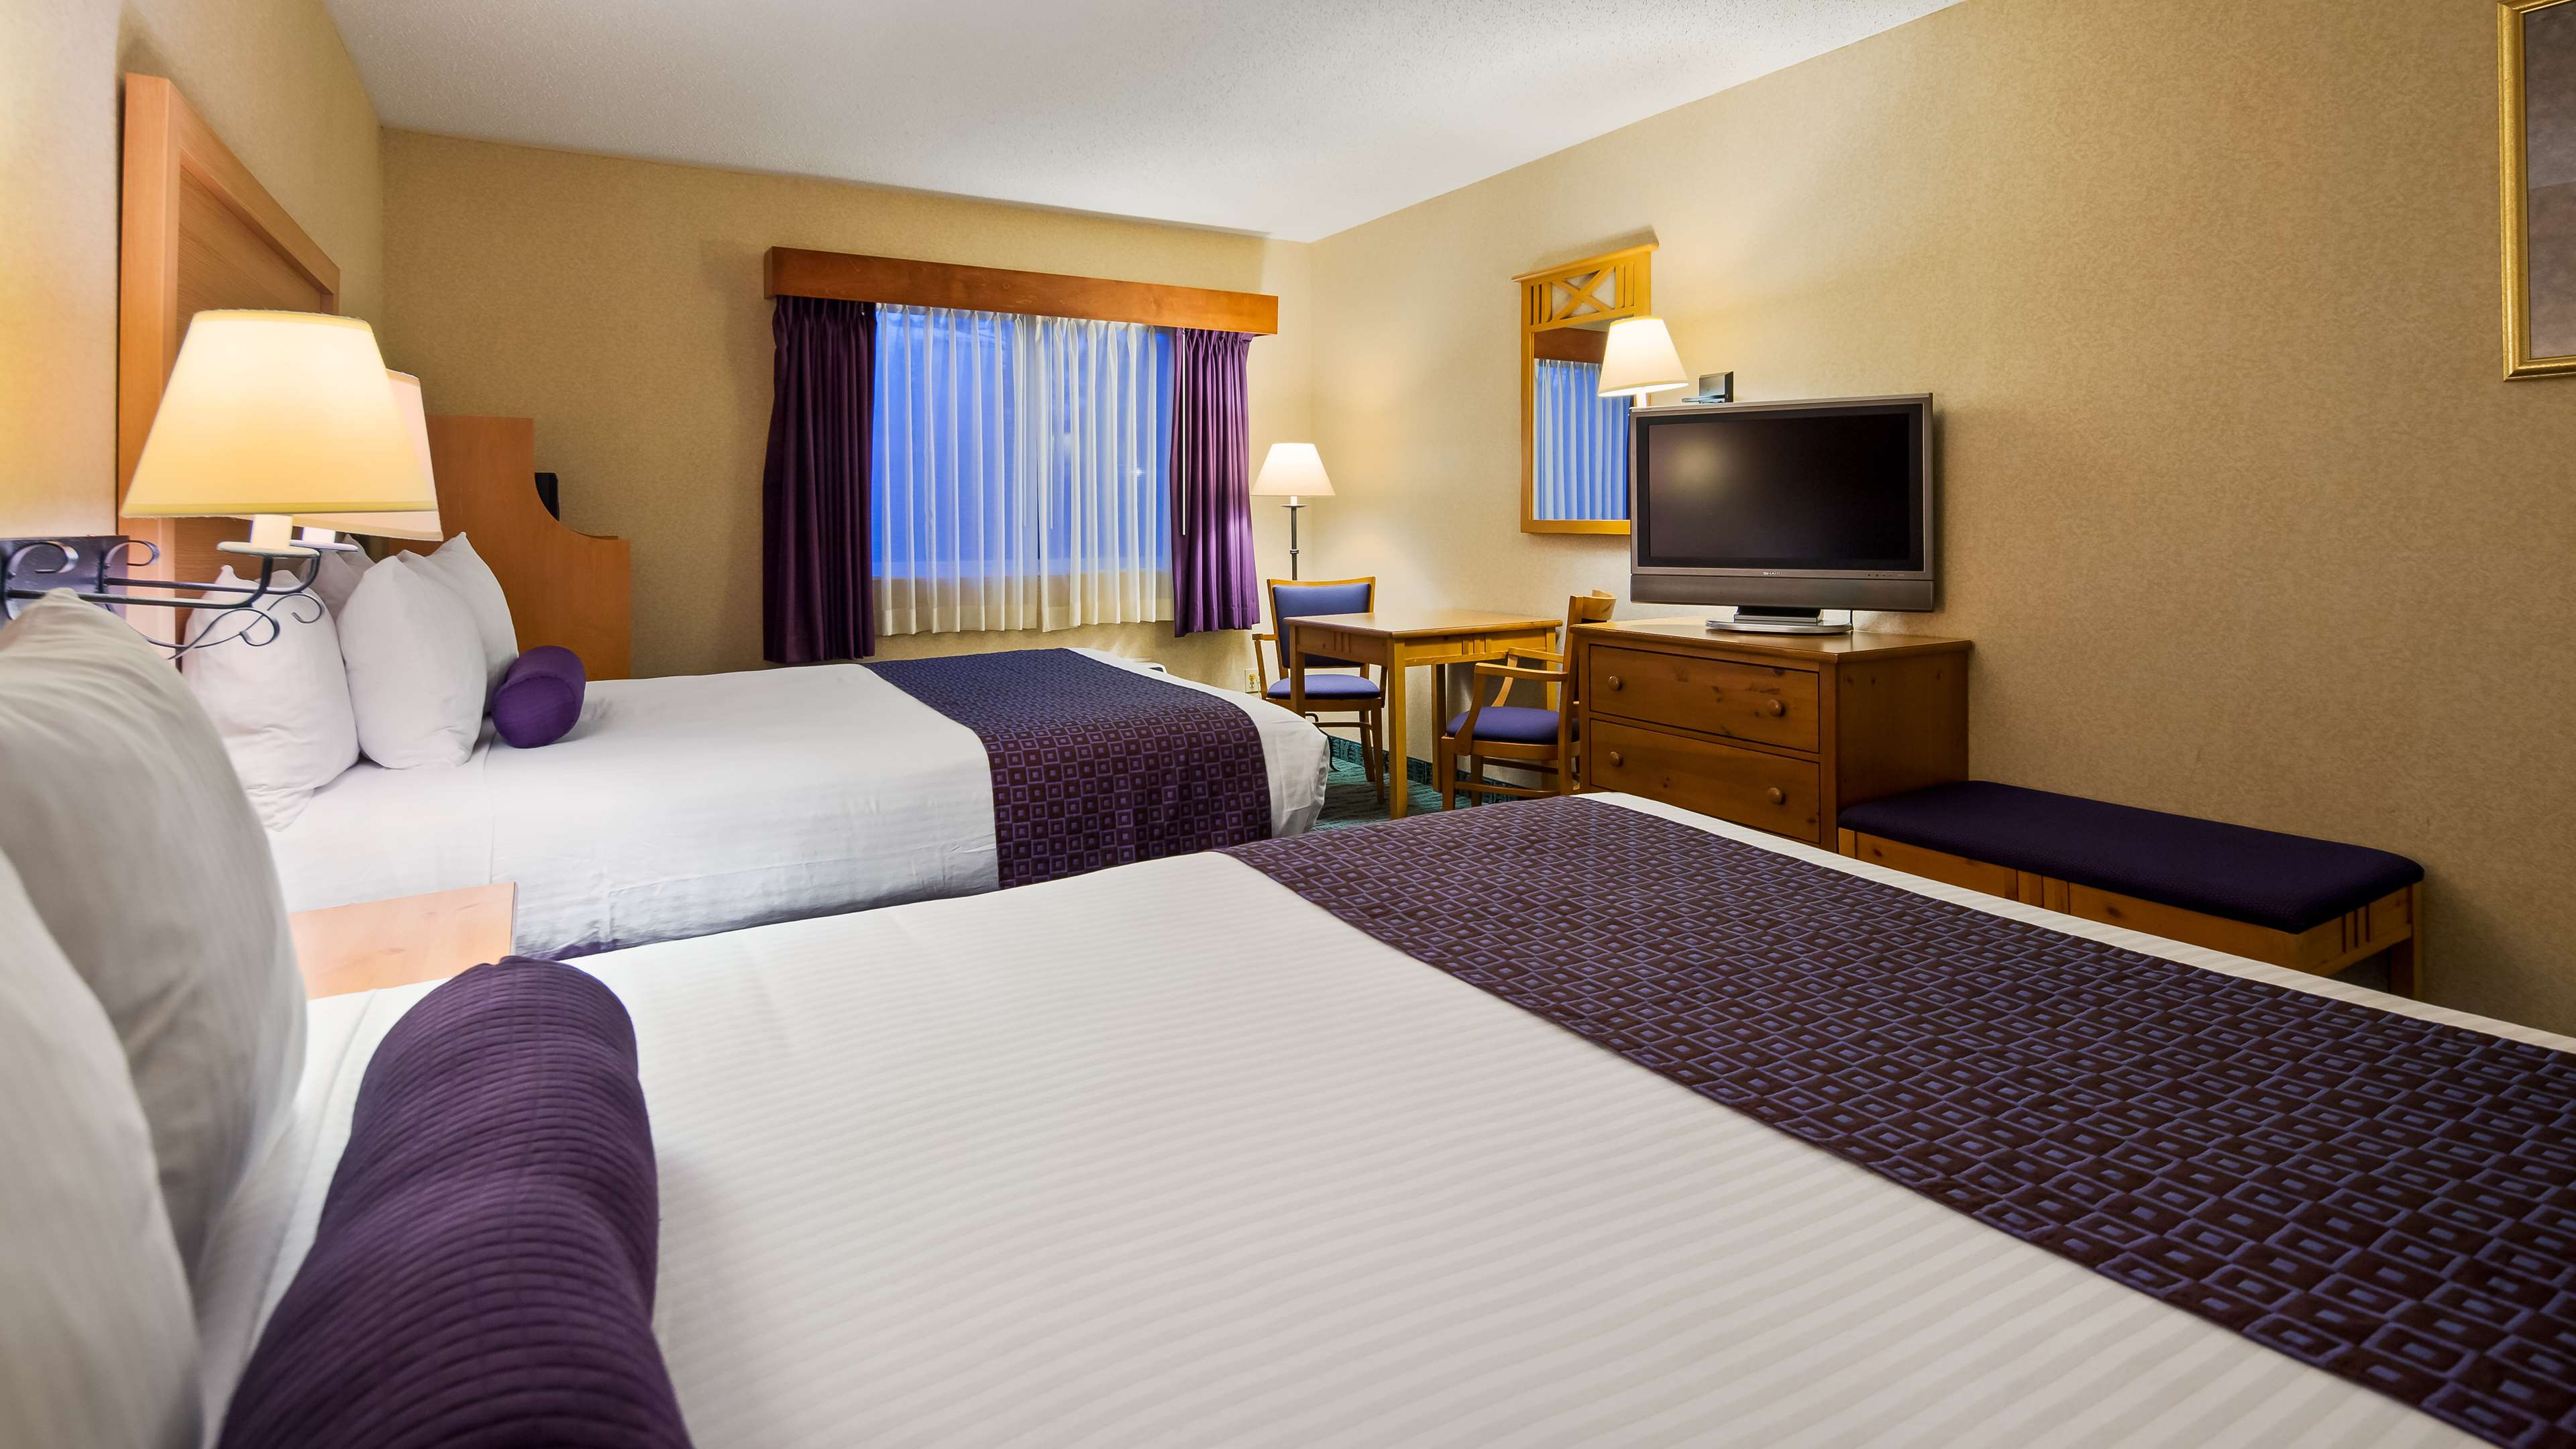 Best Western Plus Executive Court Inn & Conference Center image 26